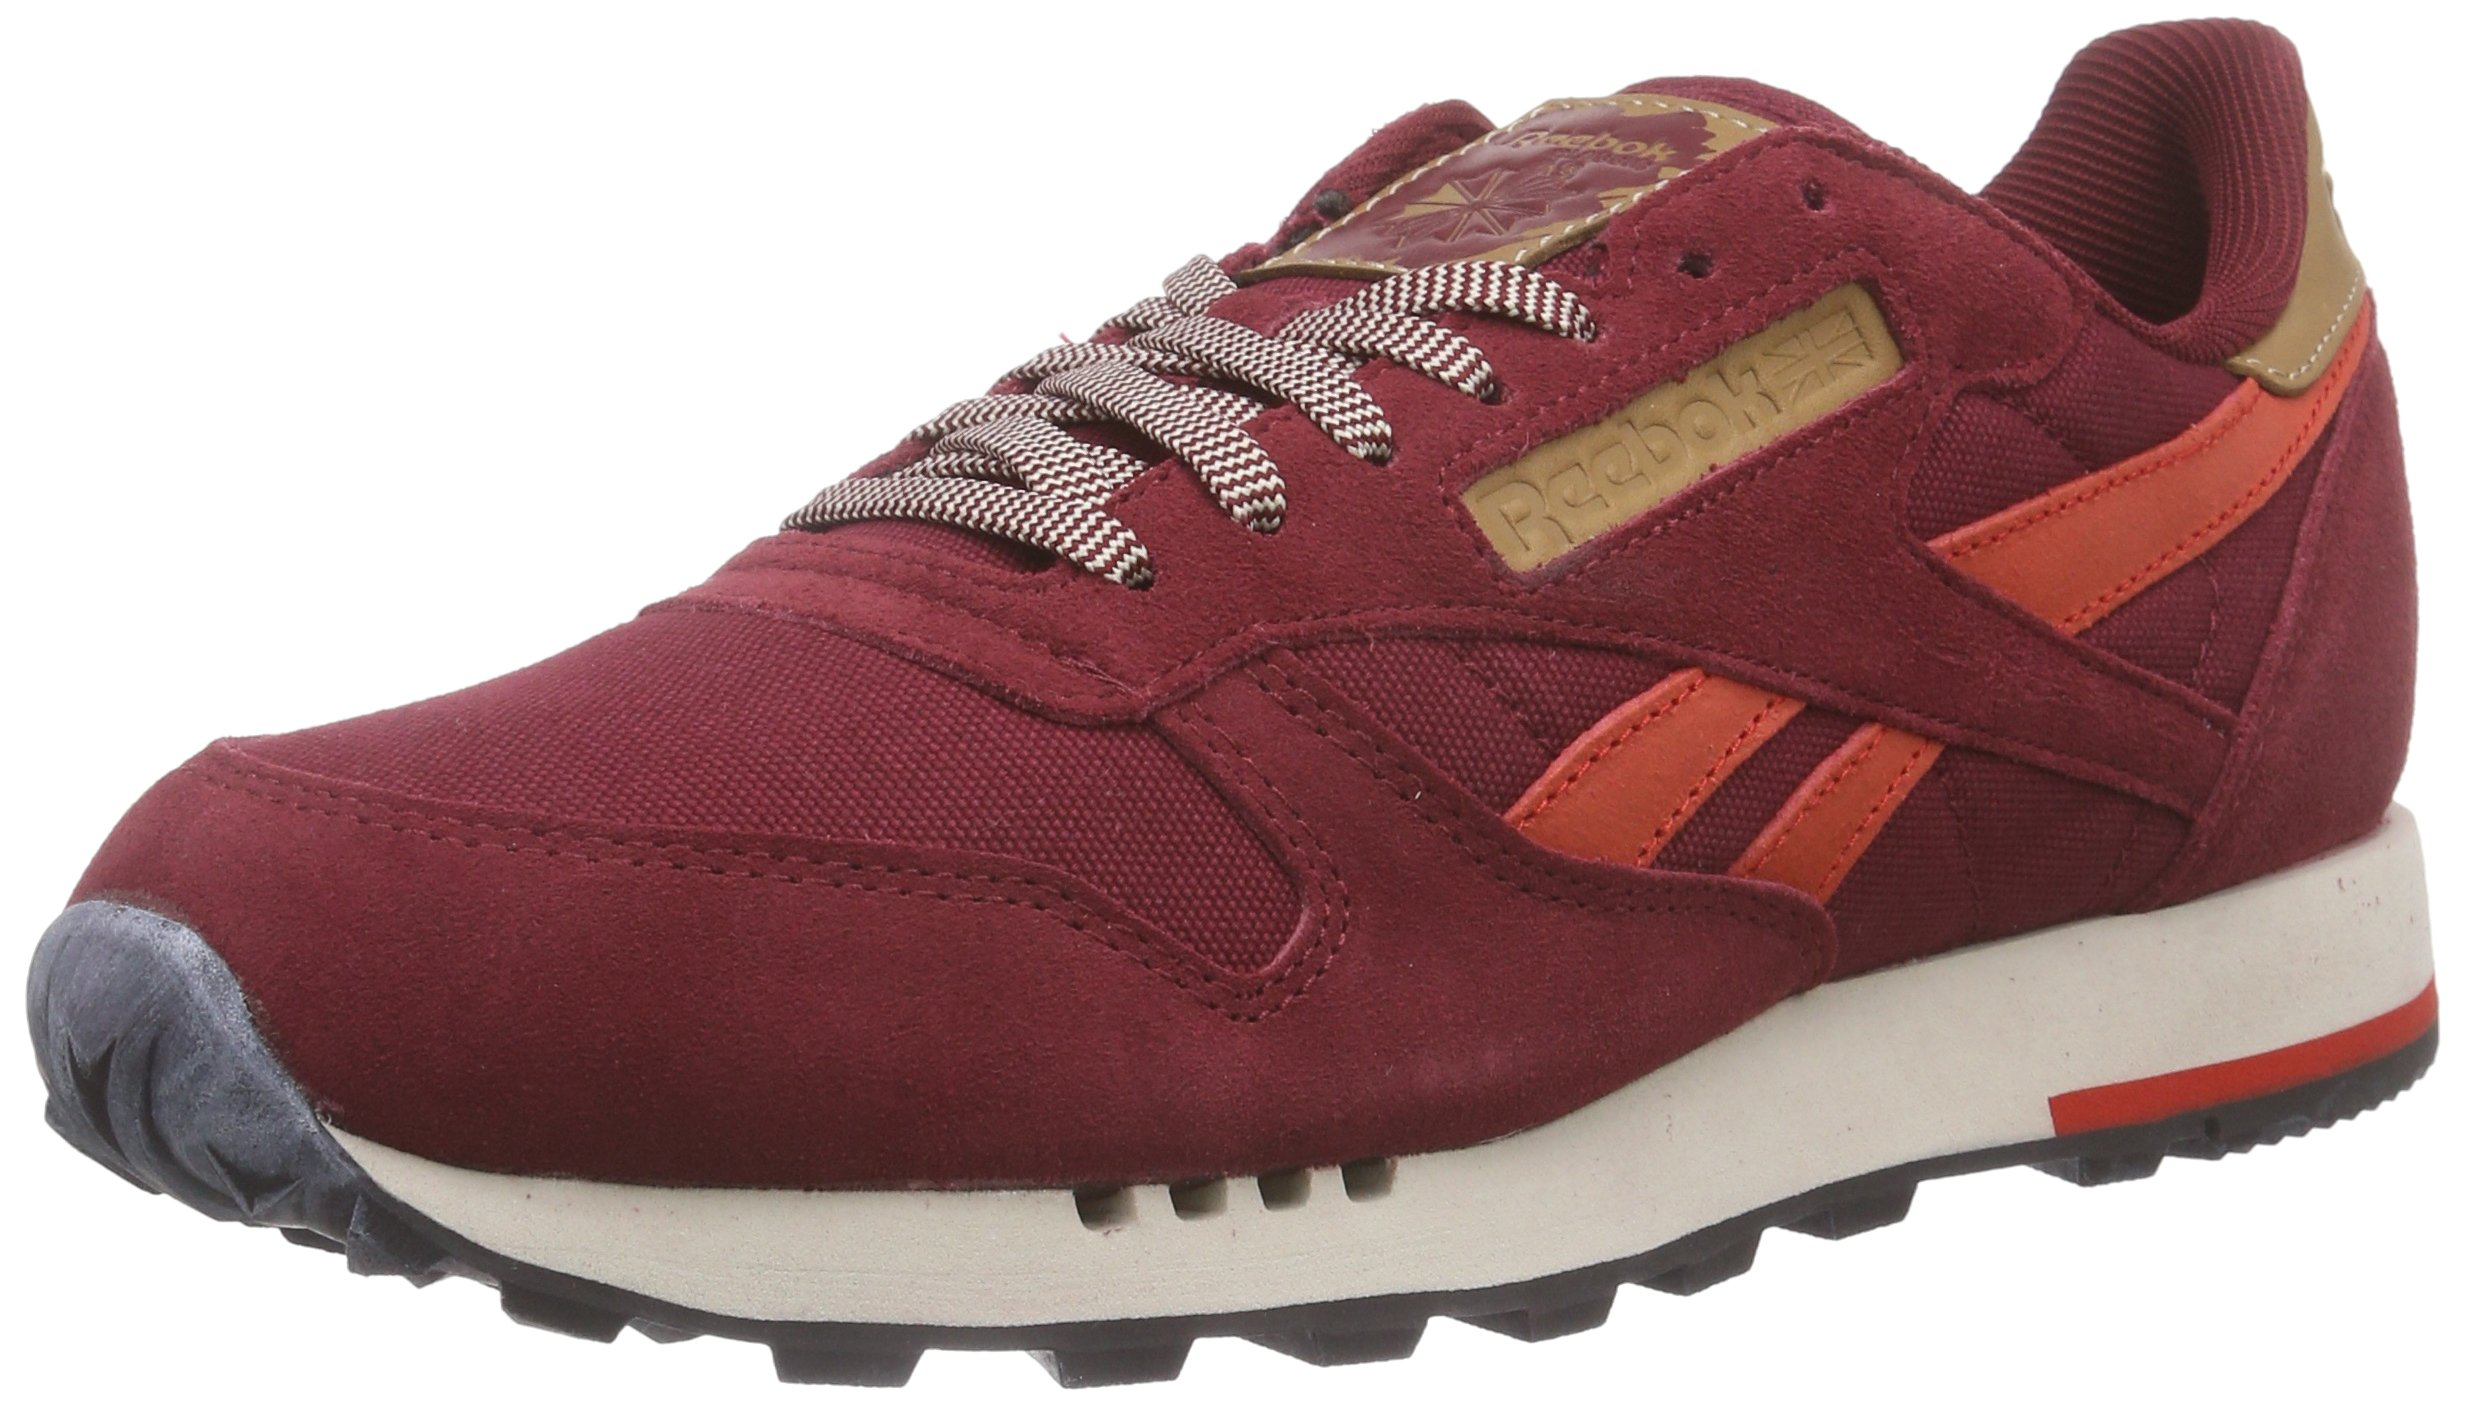 the best attitude 18bd3 8240c ... Classic Leather Utility Baskets Basses Homme, Rouge - Rot (Collegiate  Burgundy Motor. -17%. Reebok ...